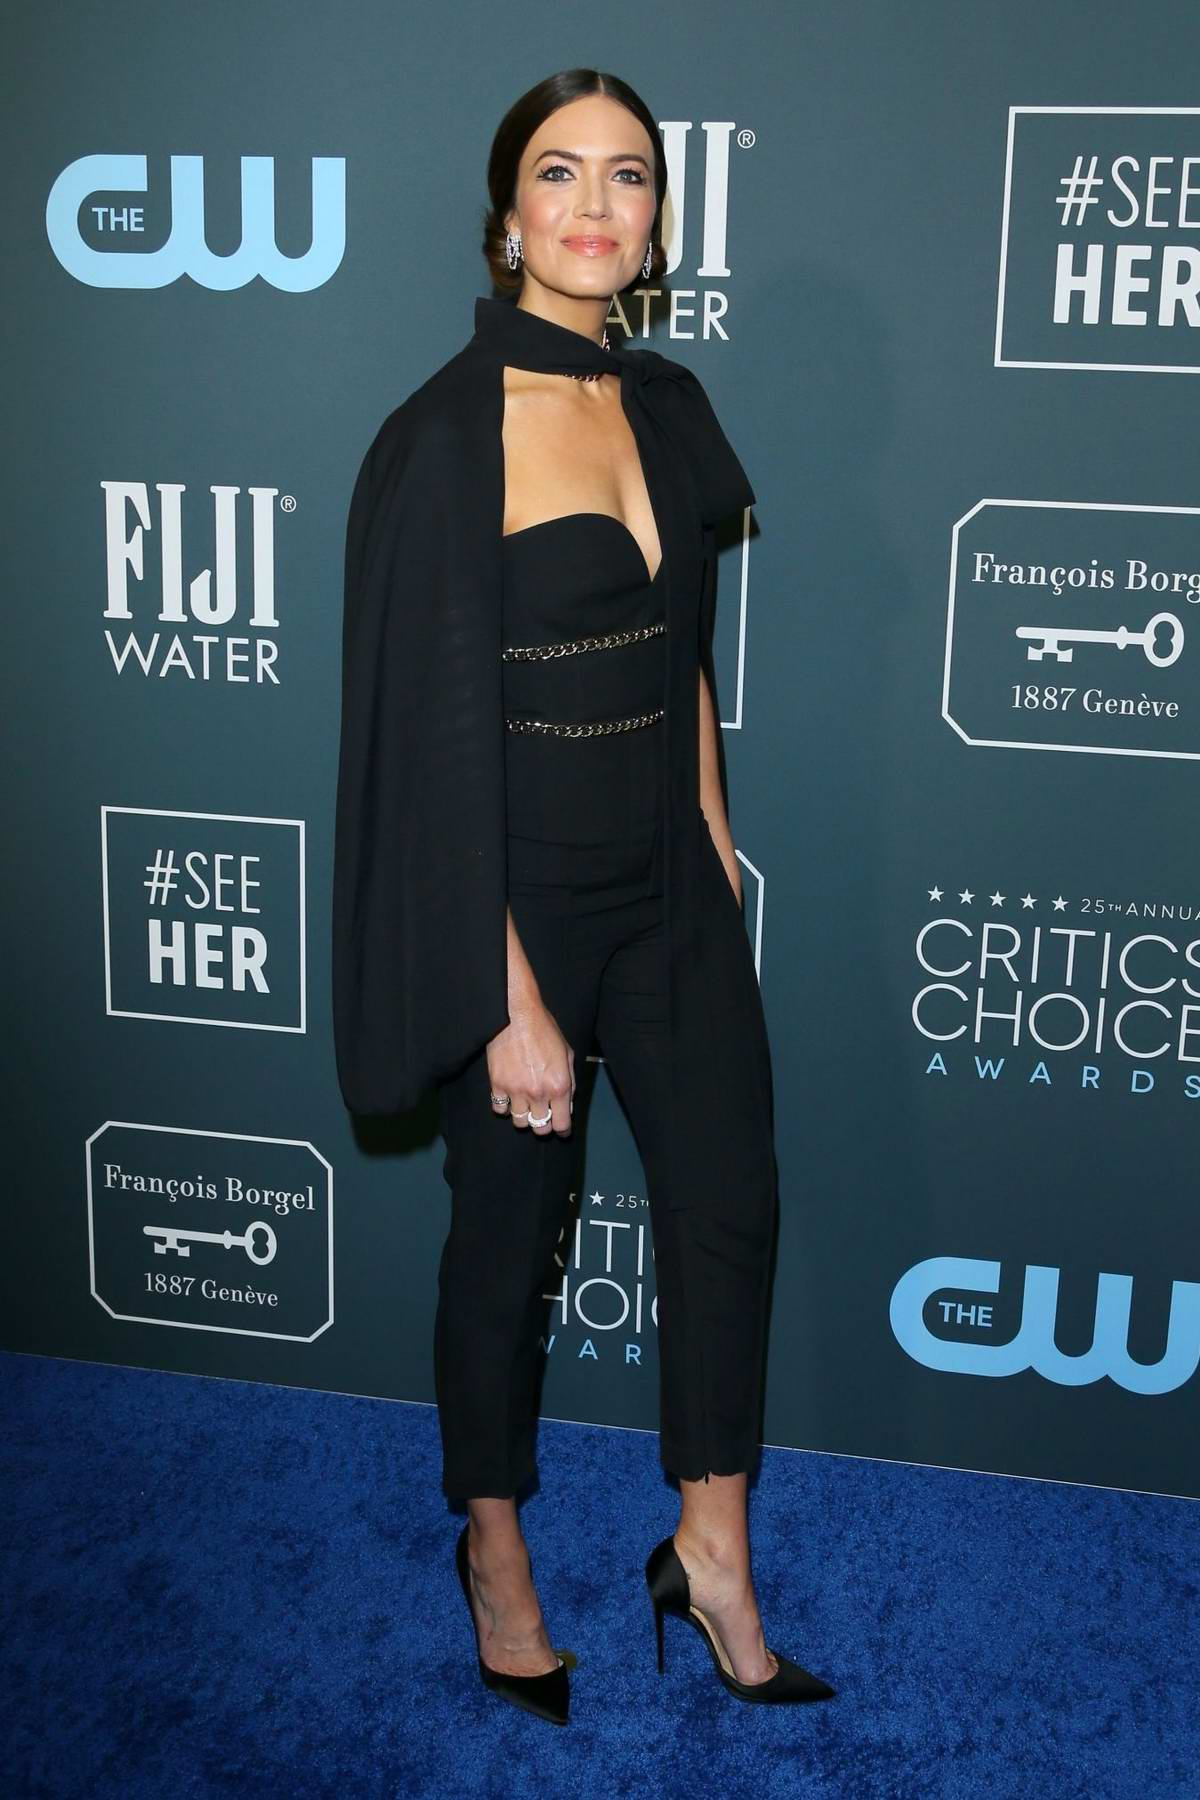 Mandy Moore attends the 25th Annual Critics' Choice Awards at Barker Hangar in Santa Monica, California